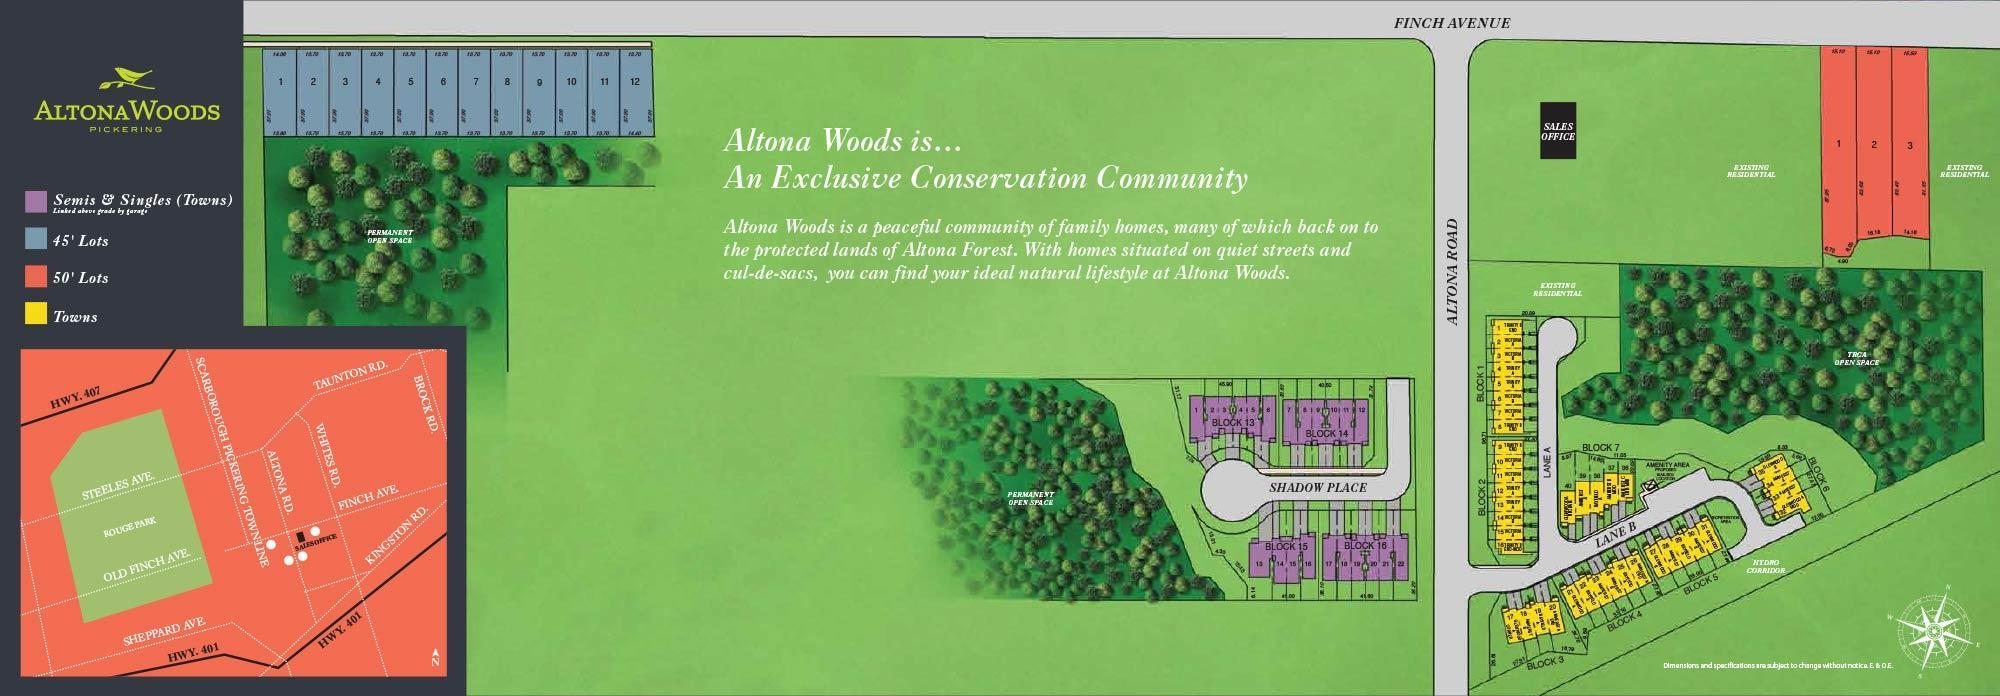 Altona Woods Site Plan